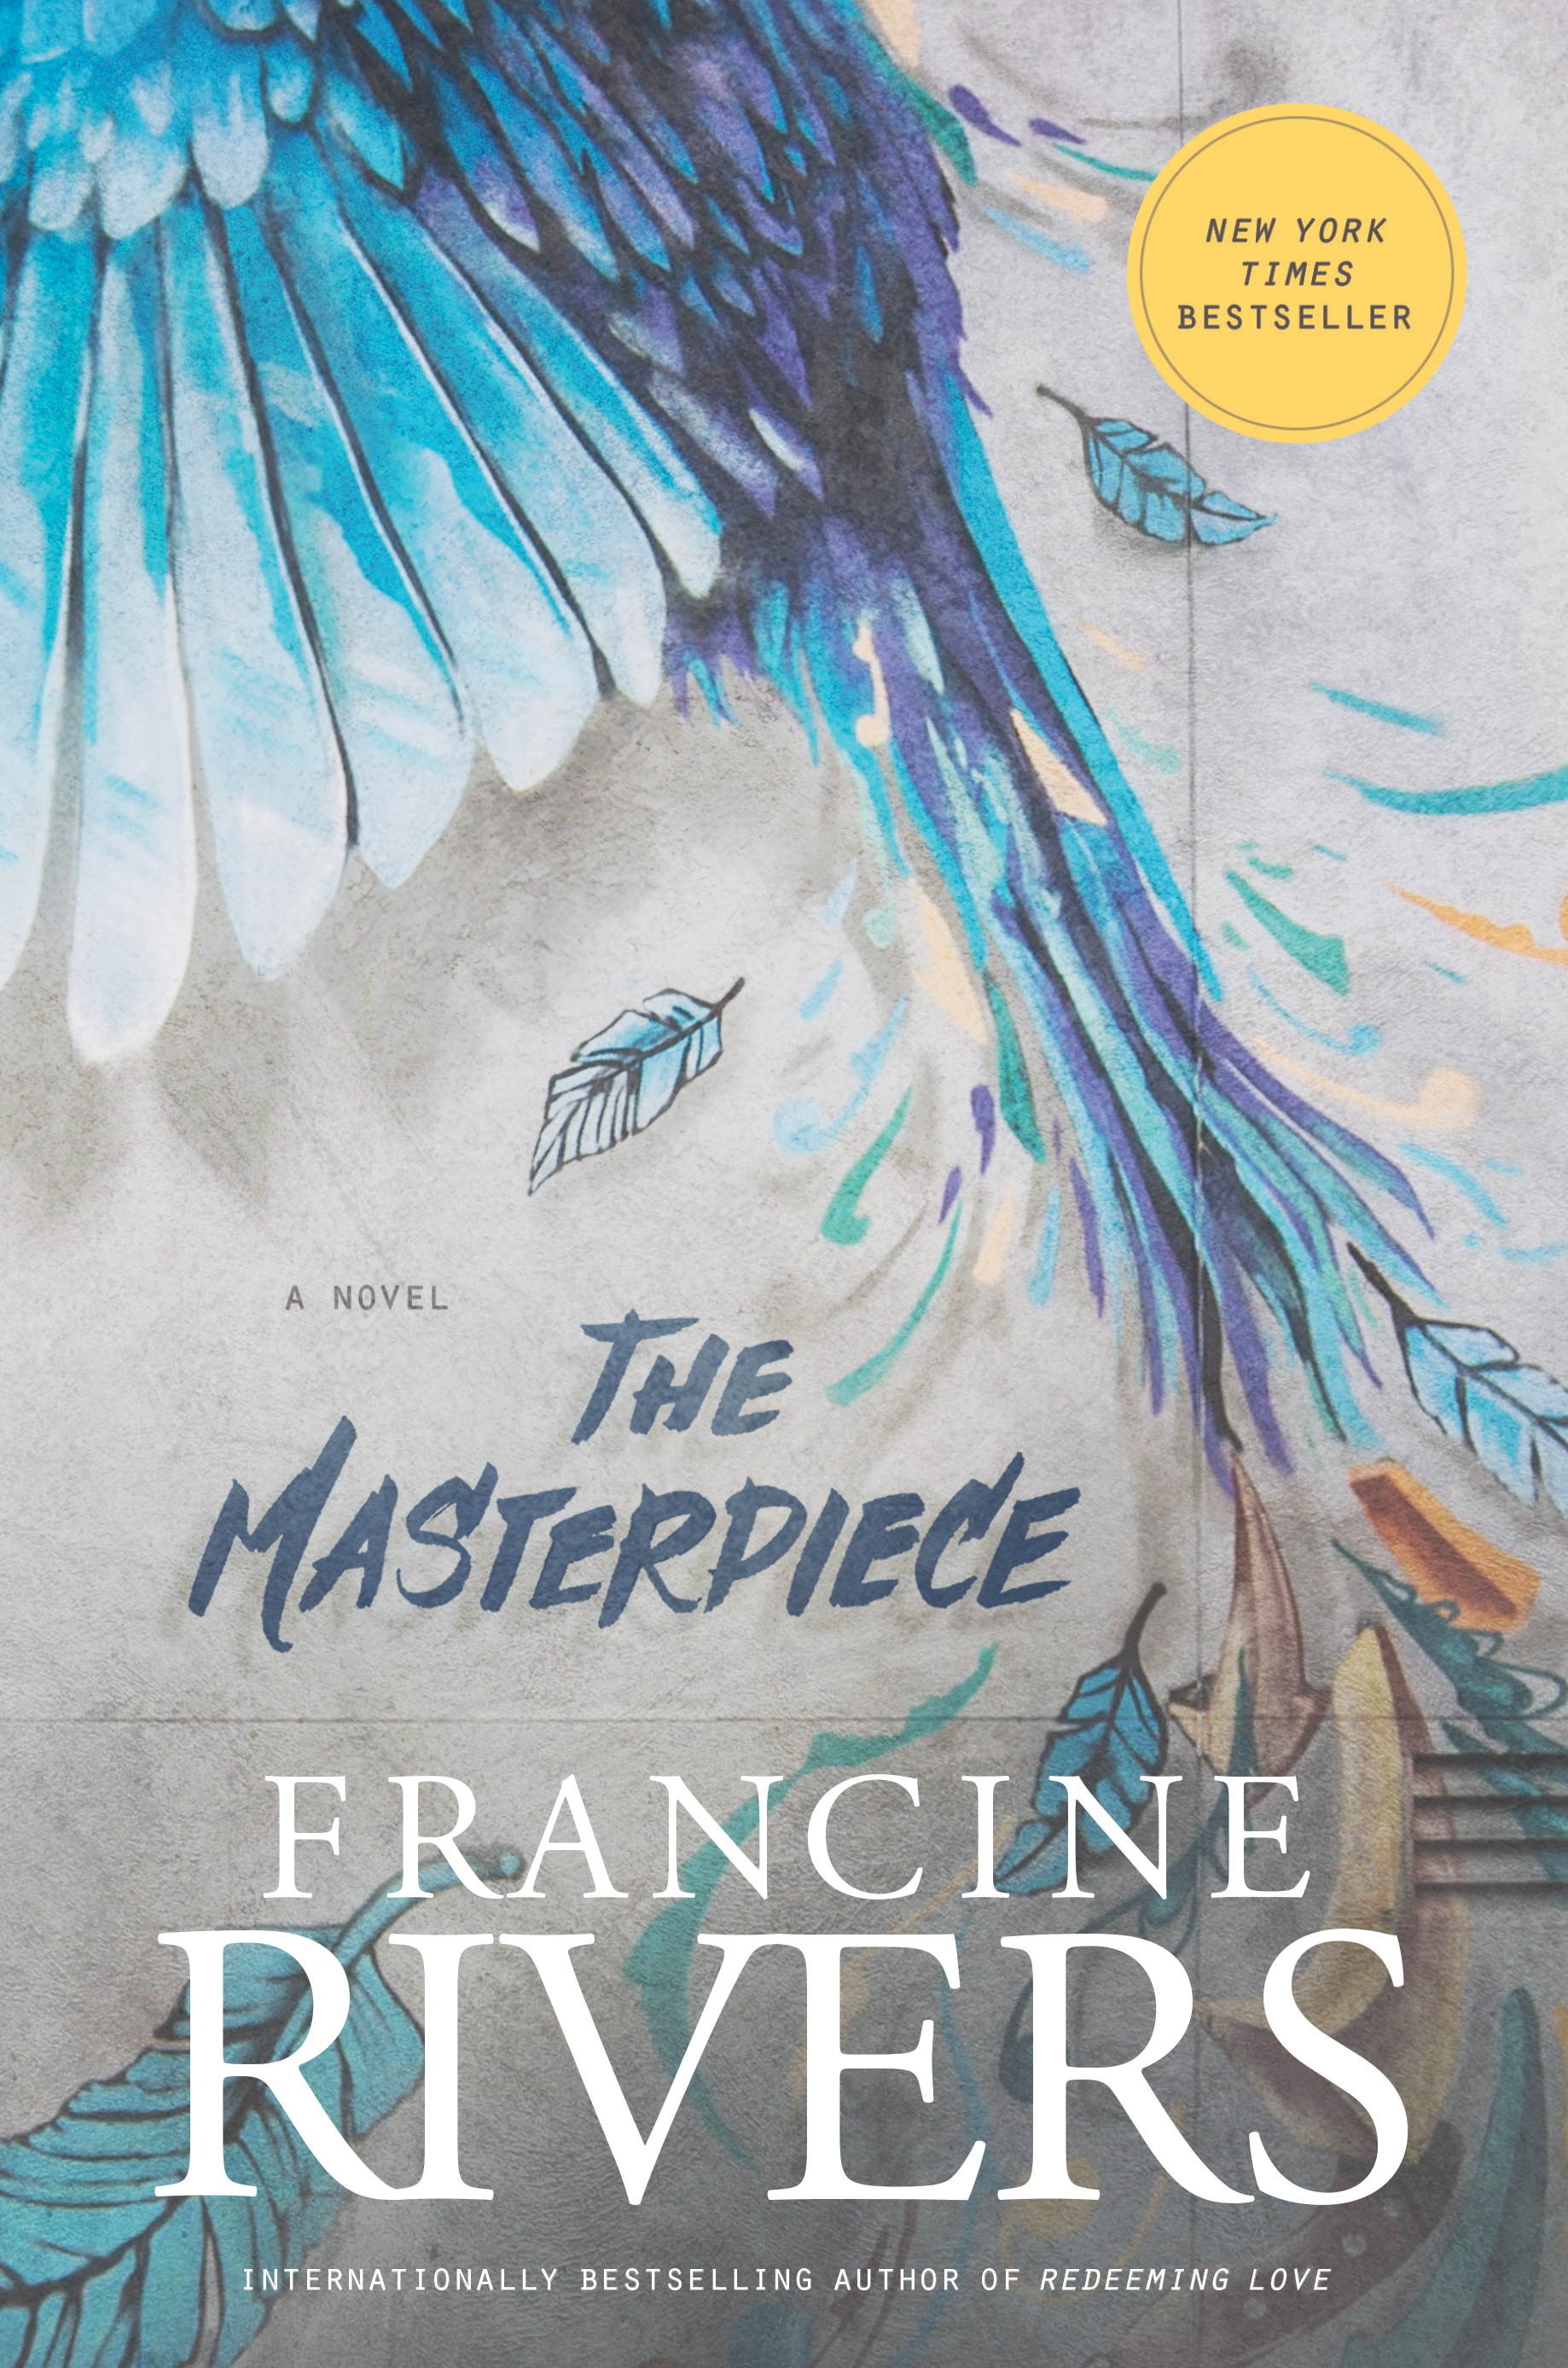 The Masterpiece [electronic resource]